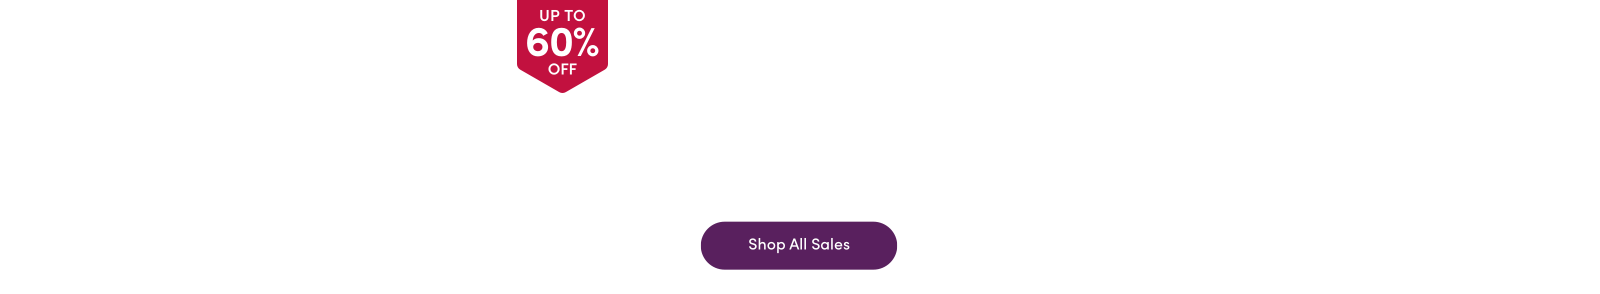 Major Appliance Deals